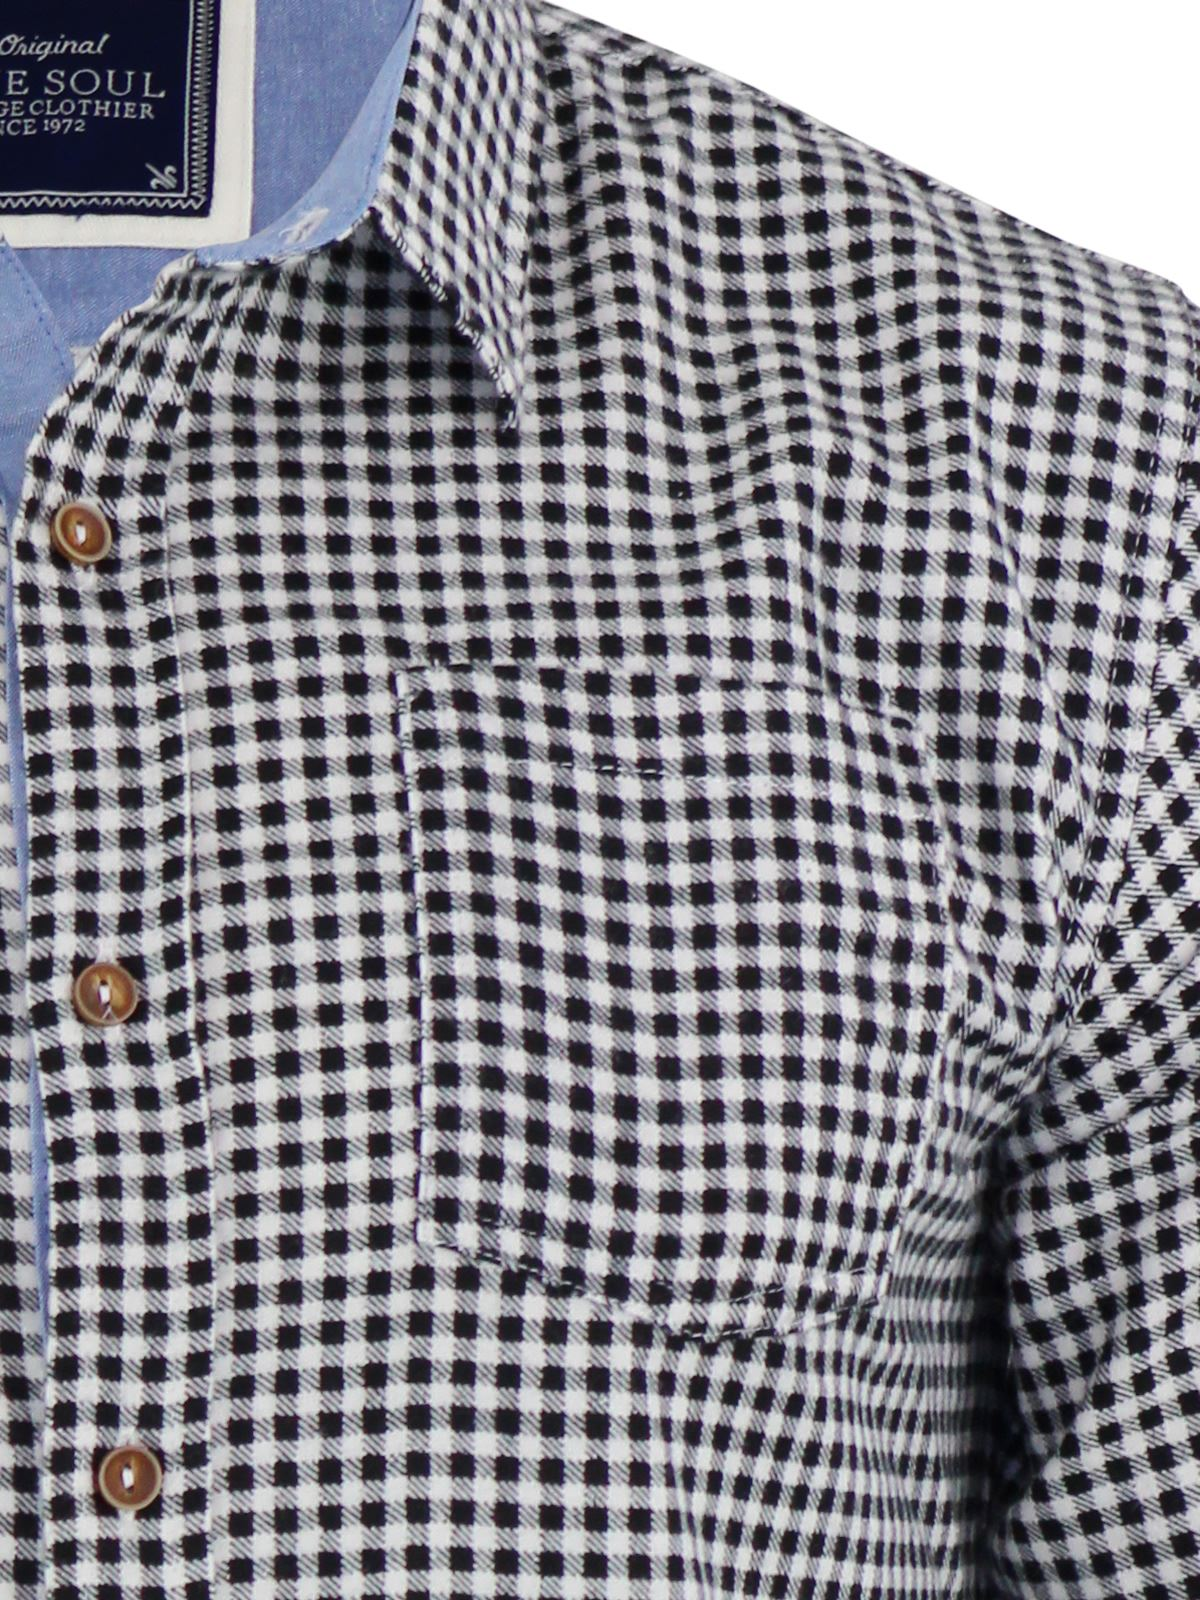 Mens-Check-Shirt-Brave-Soul-Flannel-Brushed-Cotton-Long-Sleeve-Casual-Top thumbnail 4